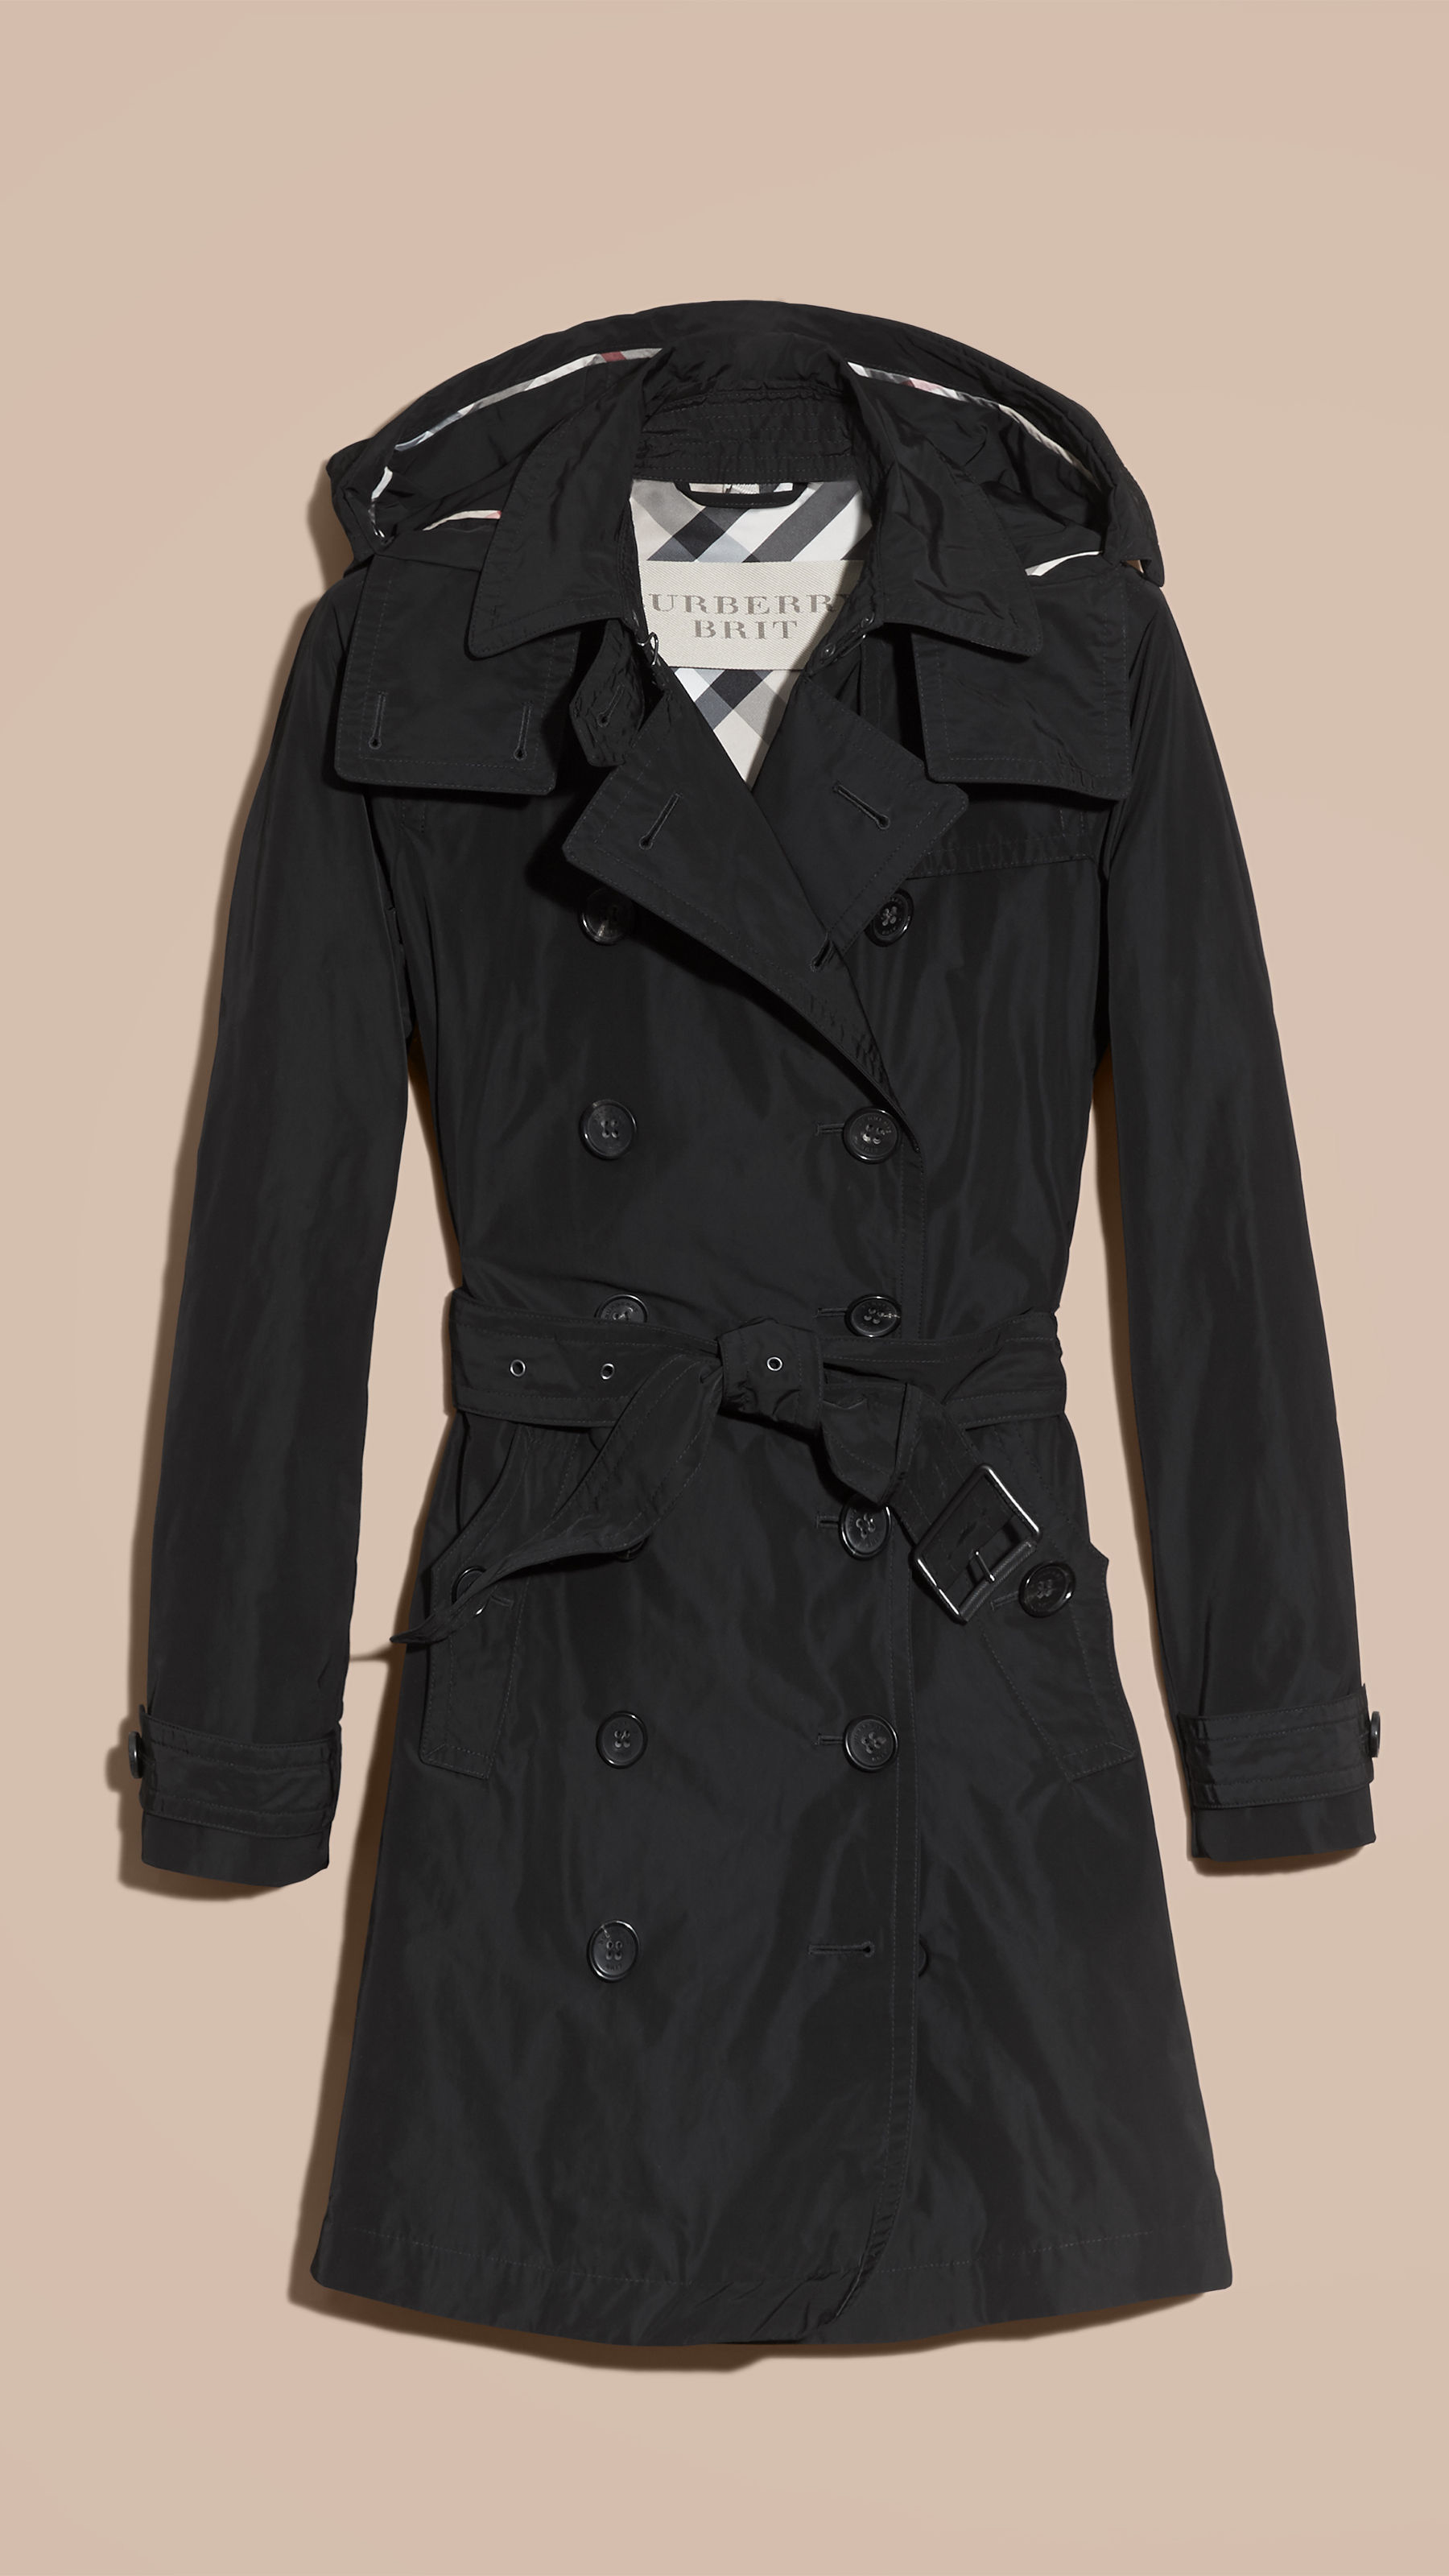 black trench coat with hood - photo #4